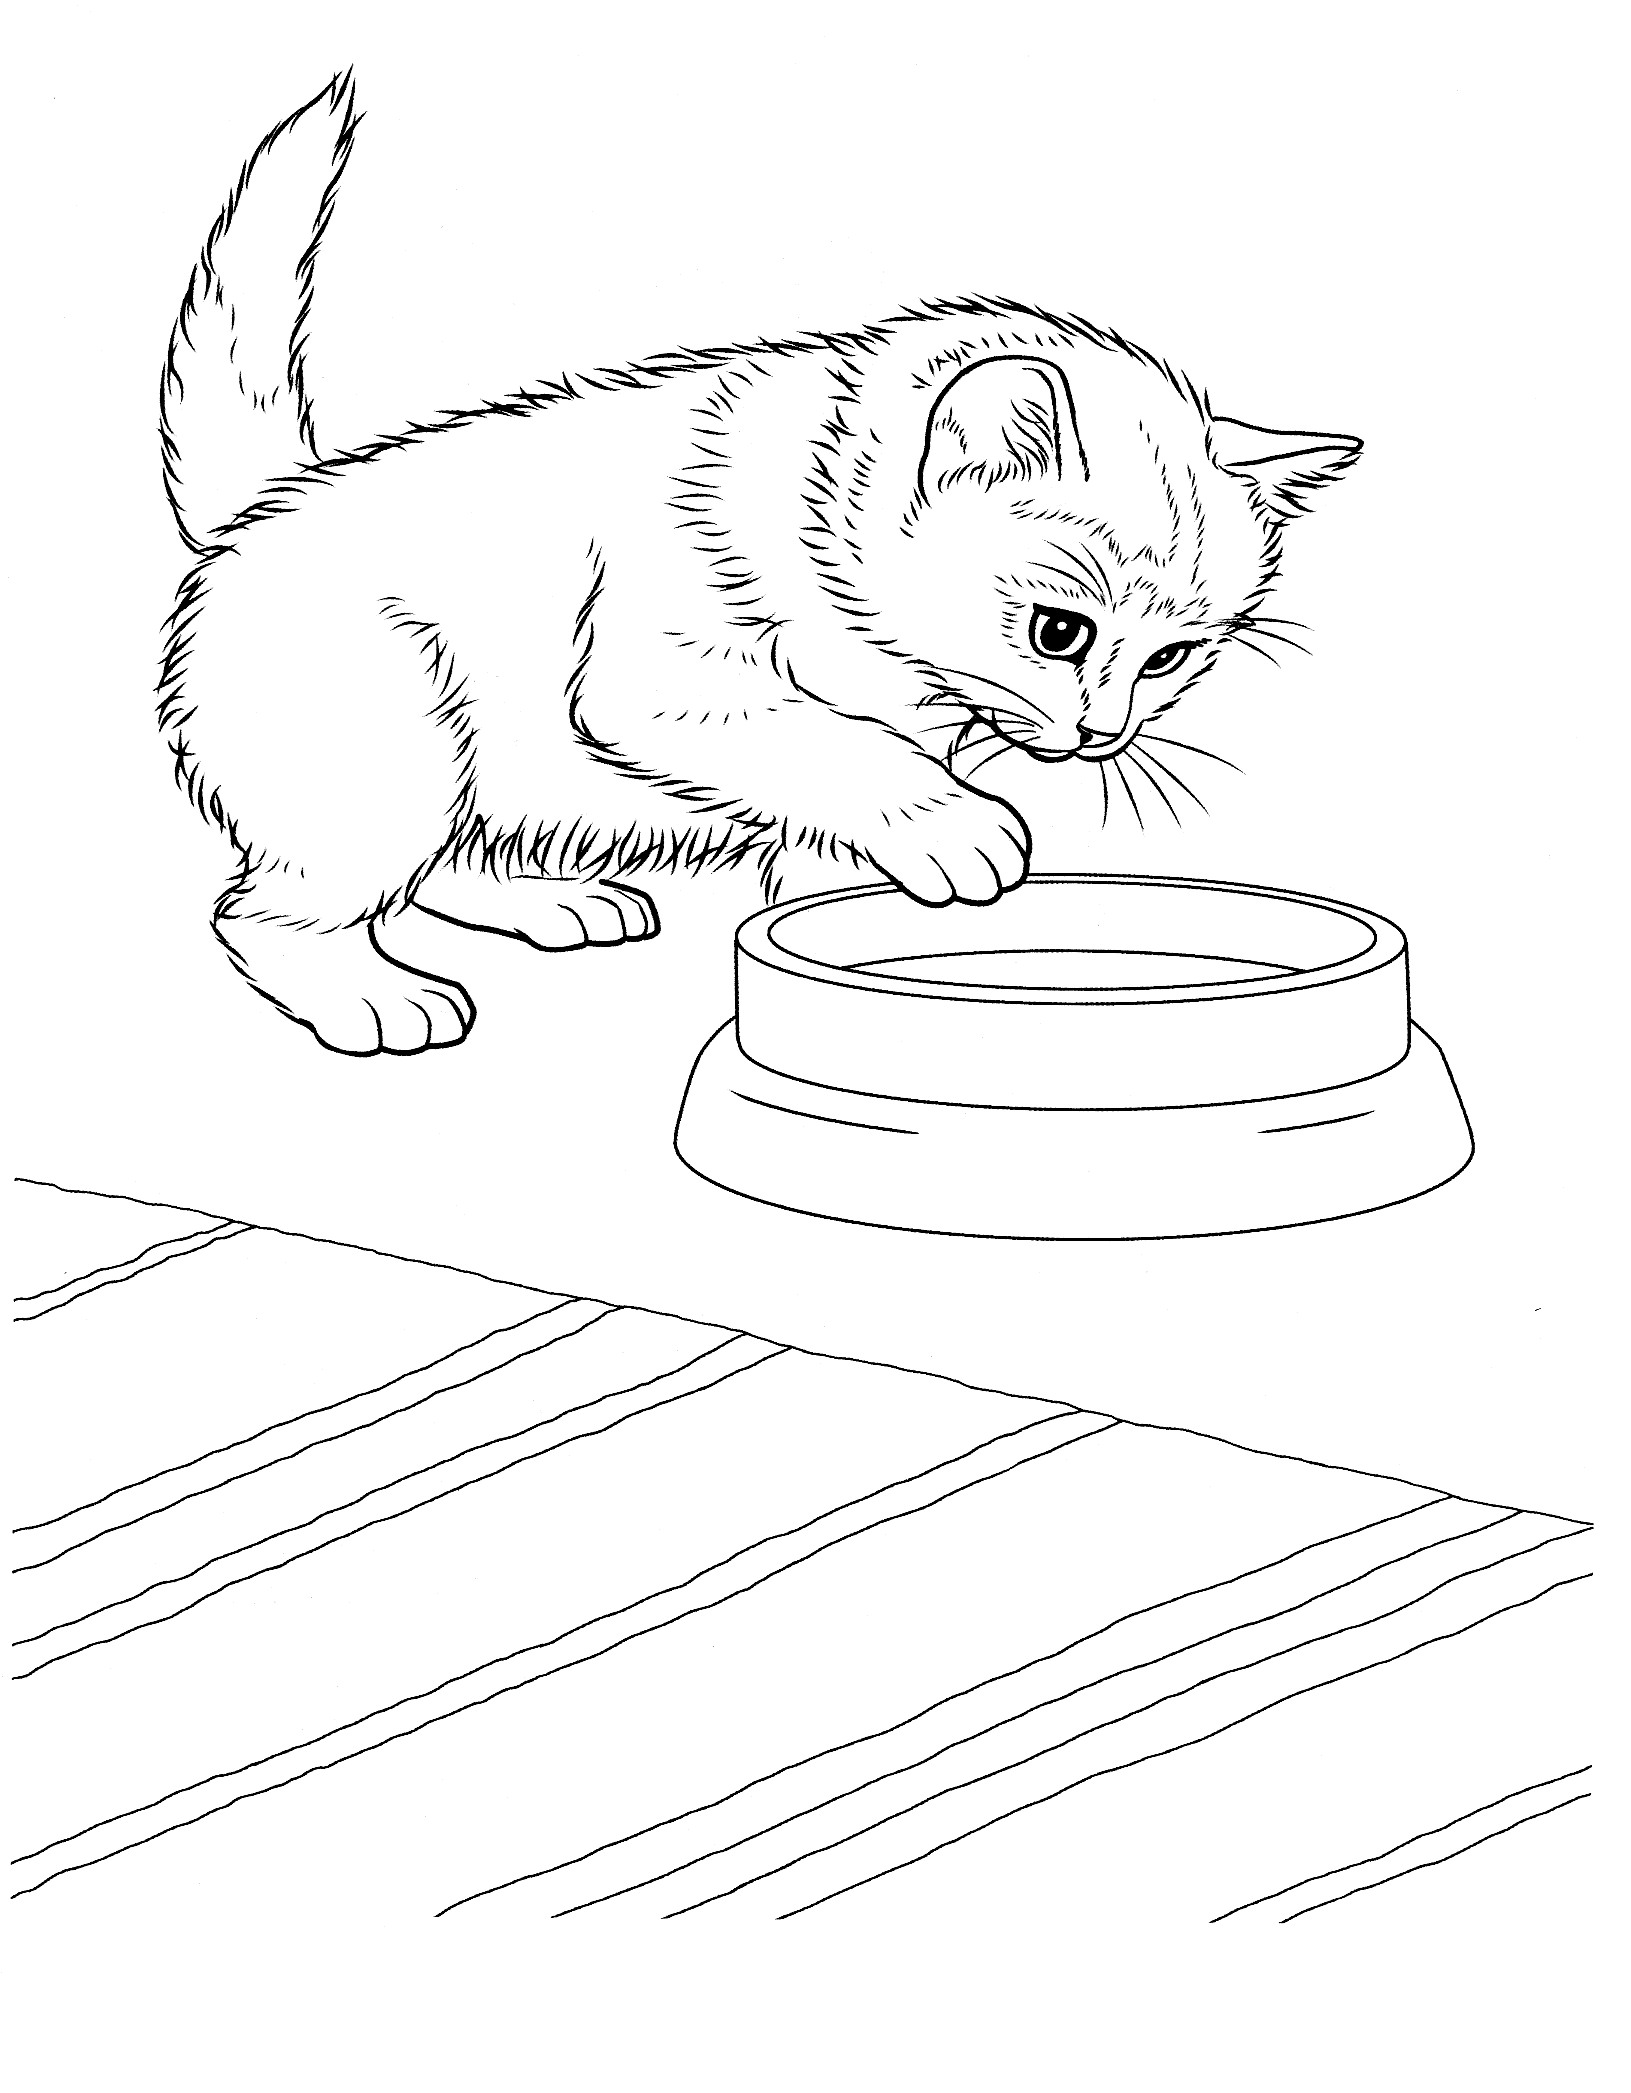 kitten coloring pictures printable kitten coloring pages best coloring pages for kids coloring kitten pictures printable